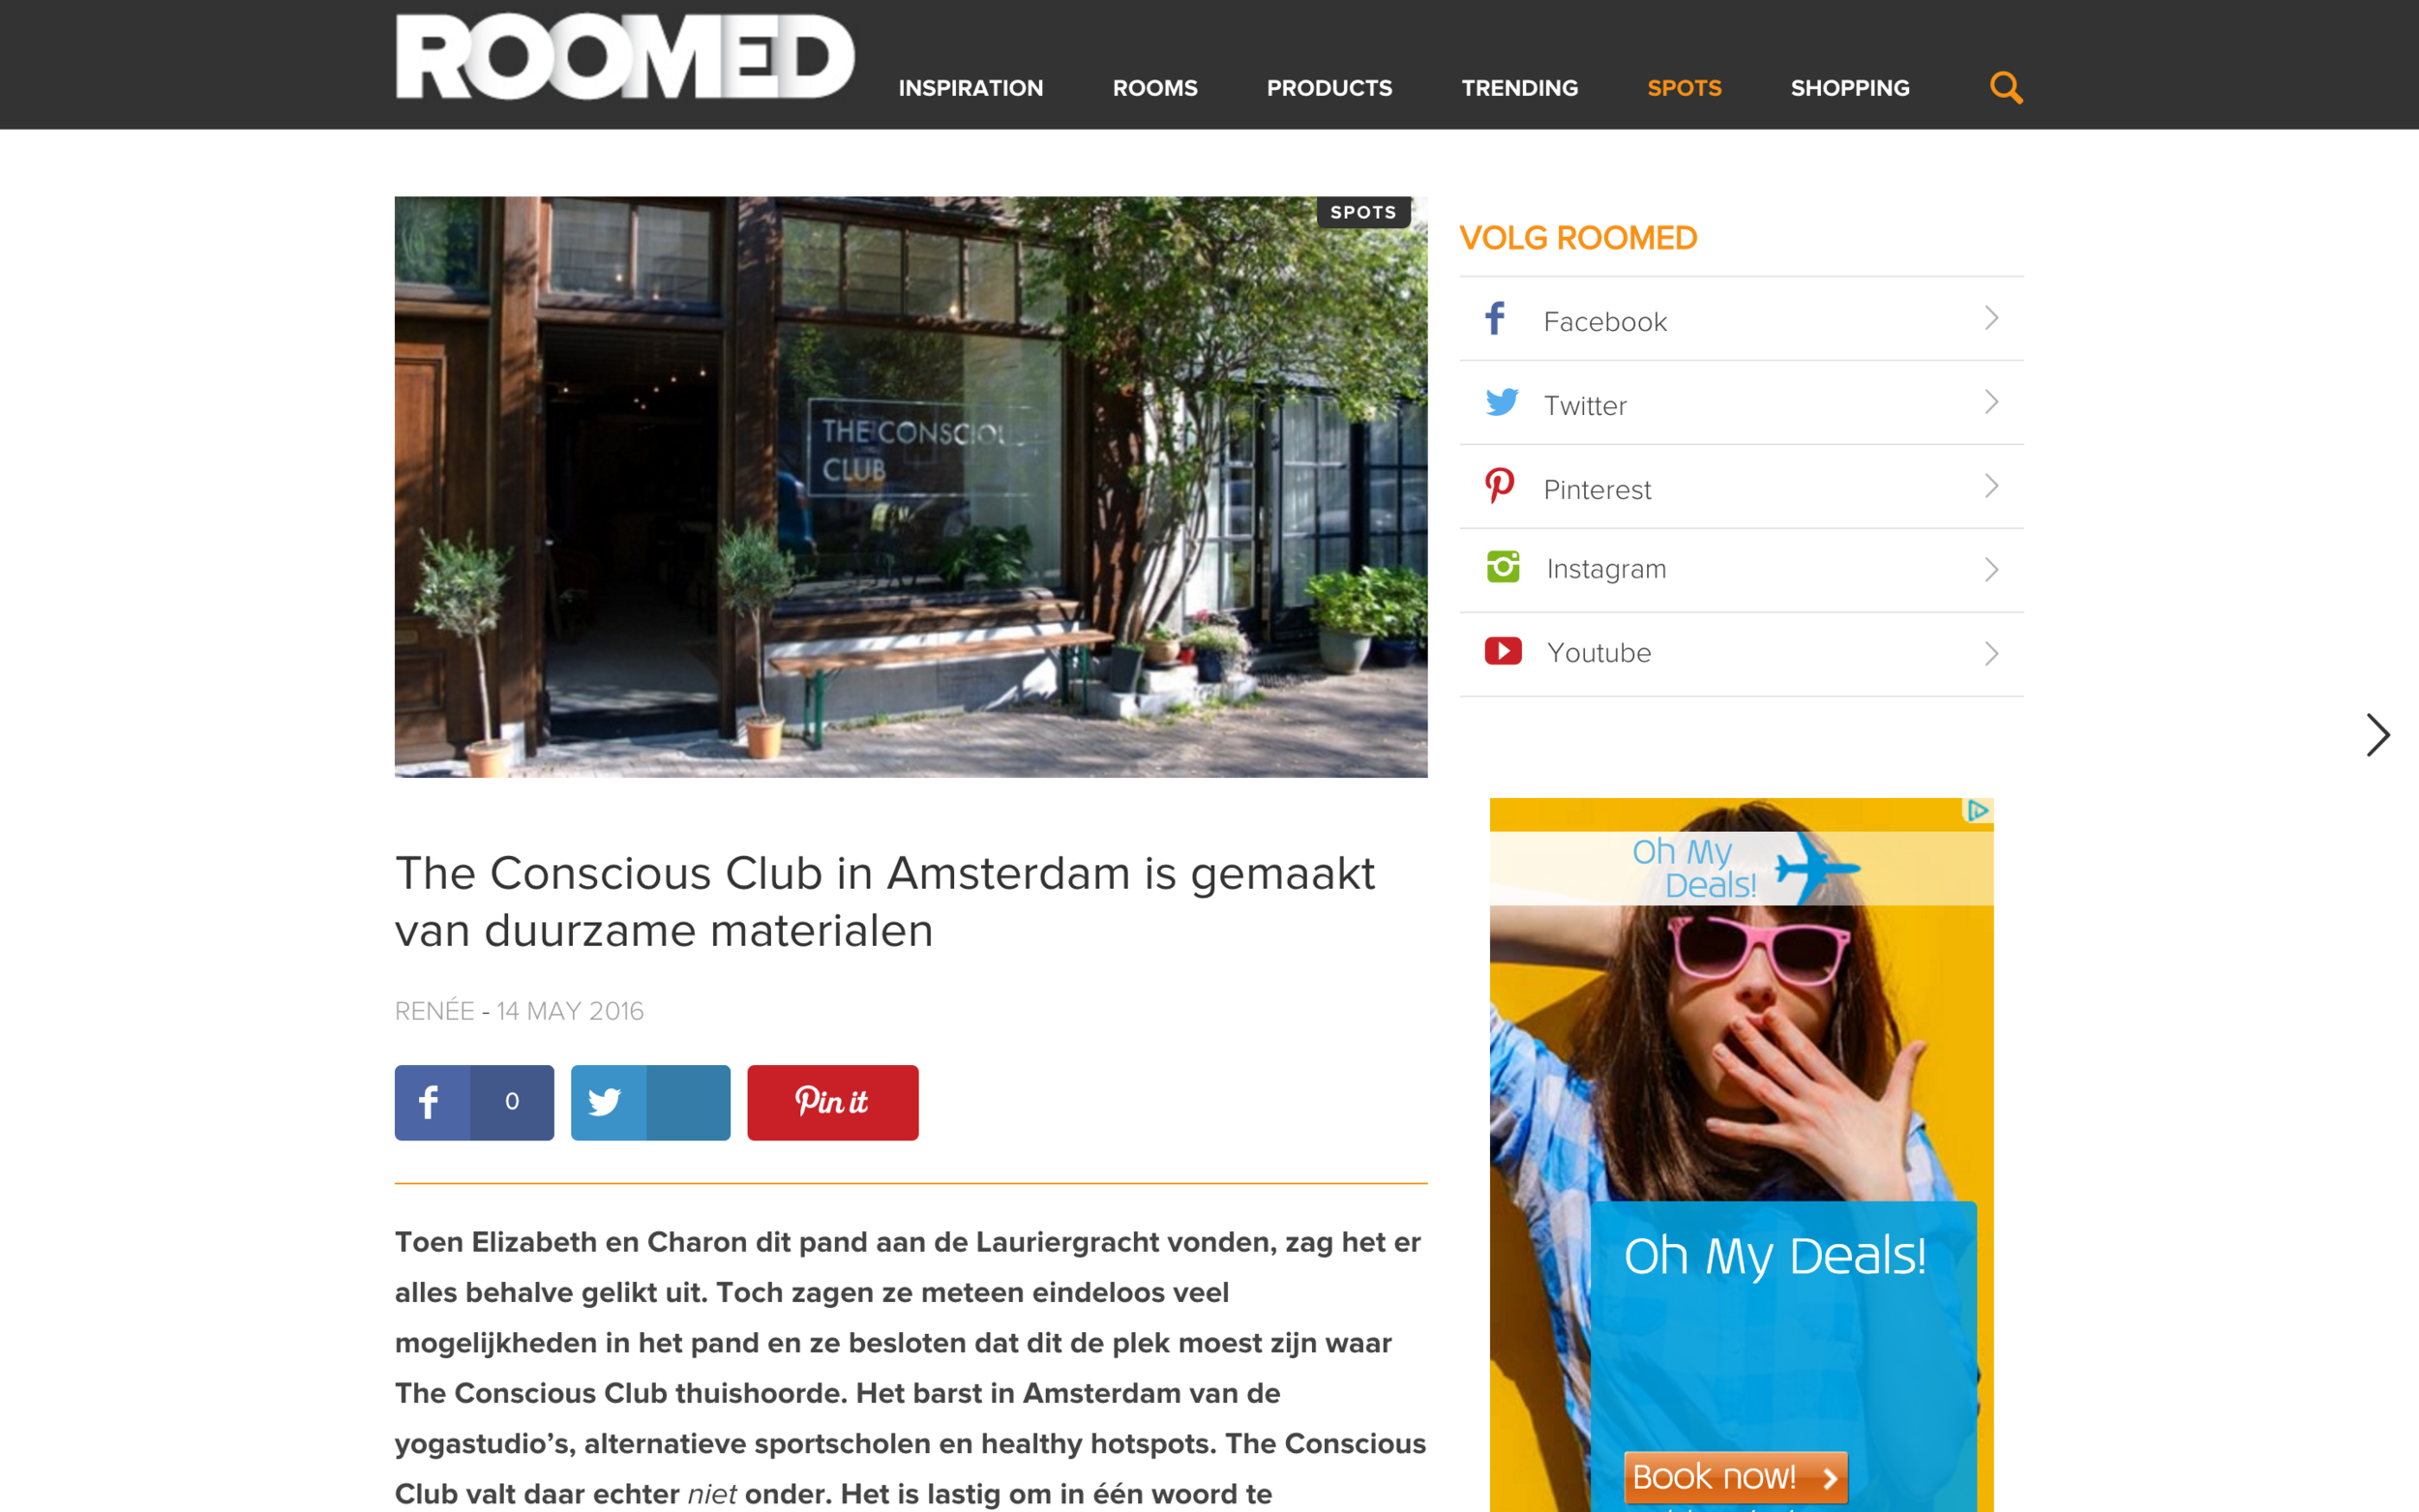 http://roomed.nl/the-conscious-club-in-amsterdam-is-gemaakt-van-duurzame-materialen/